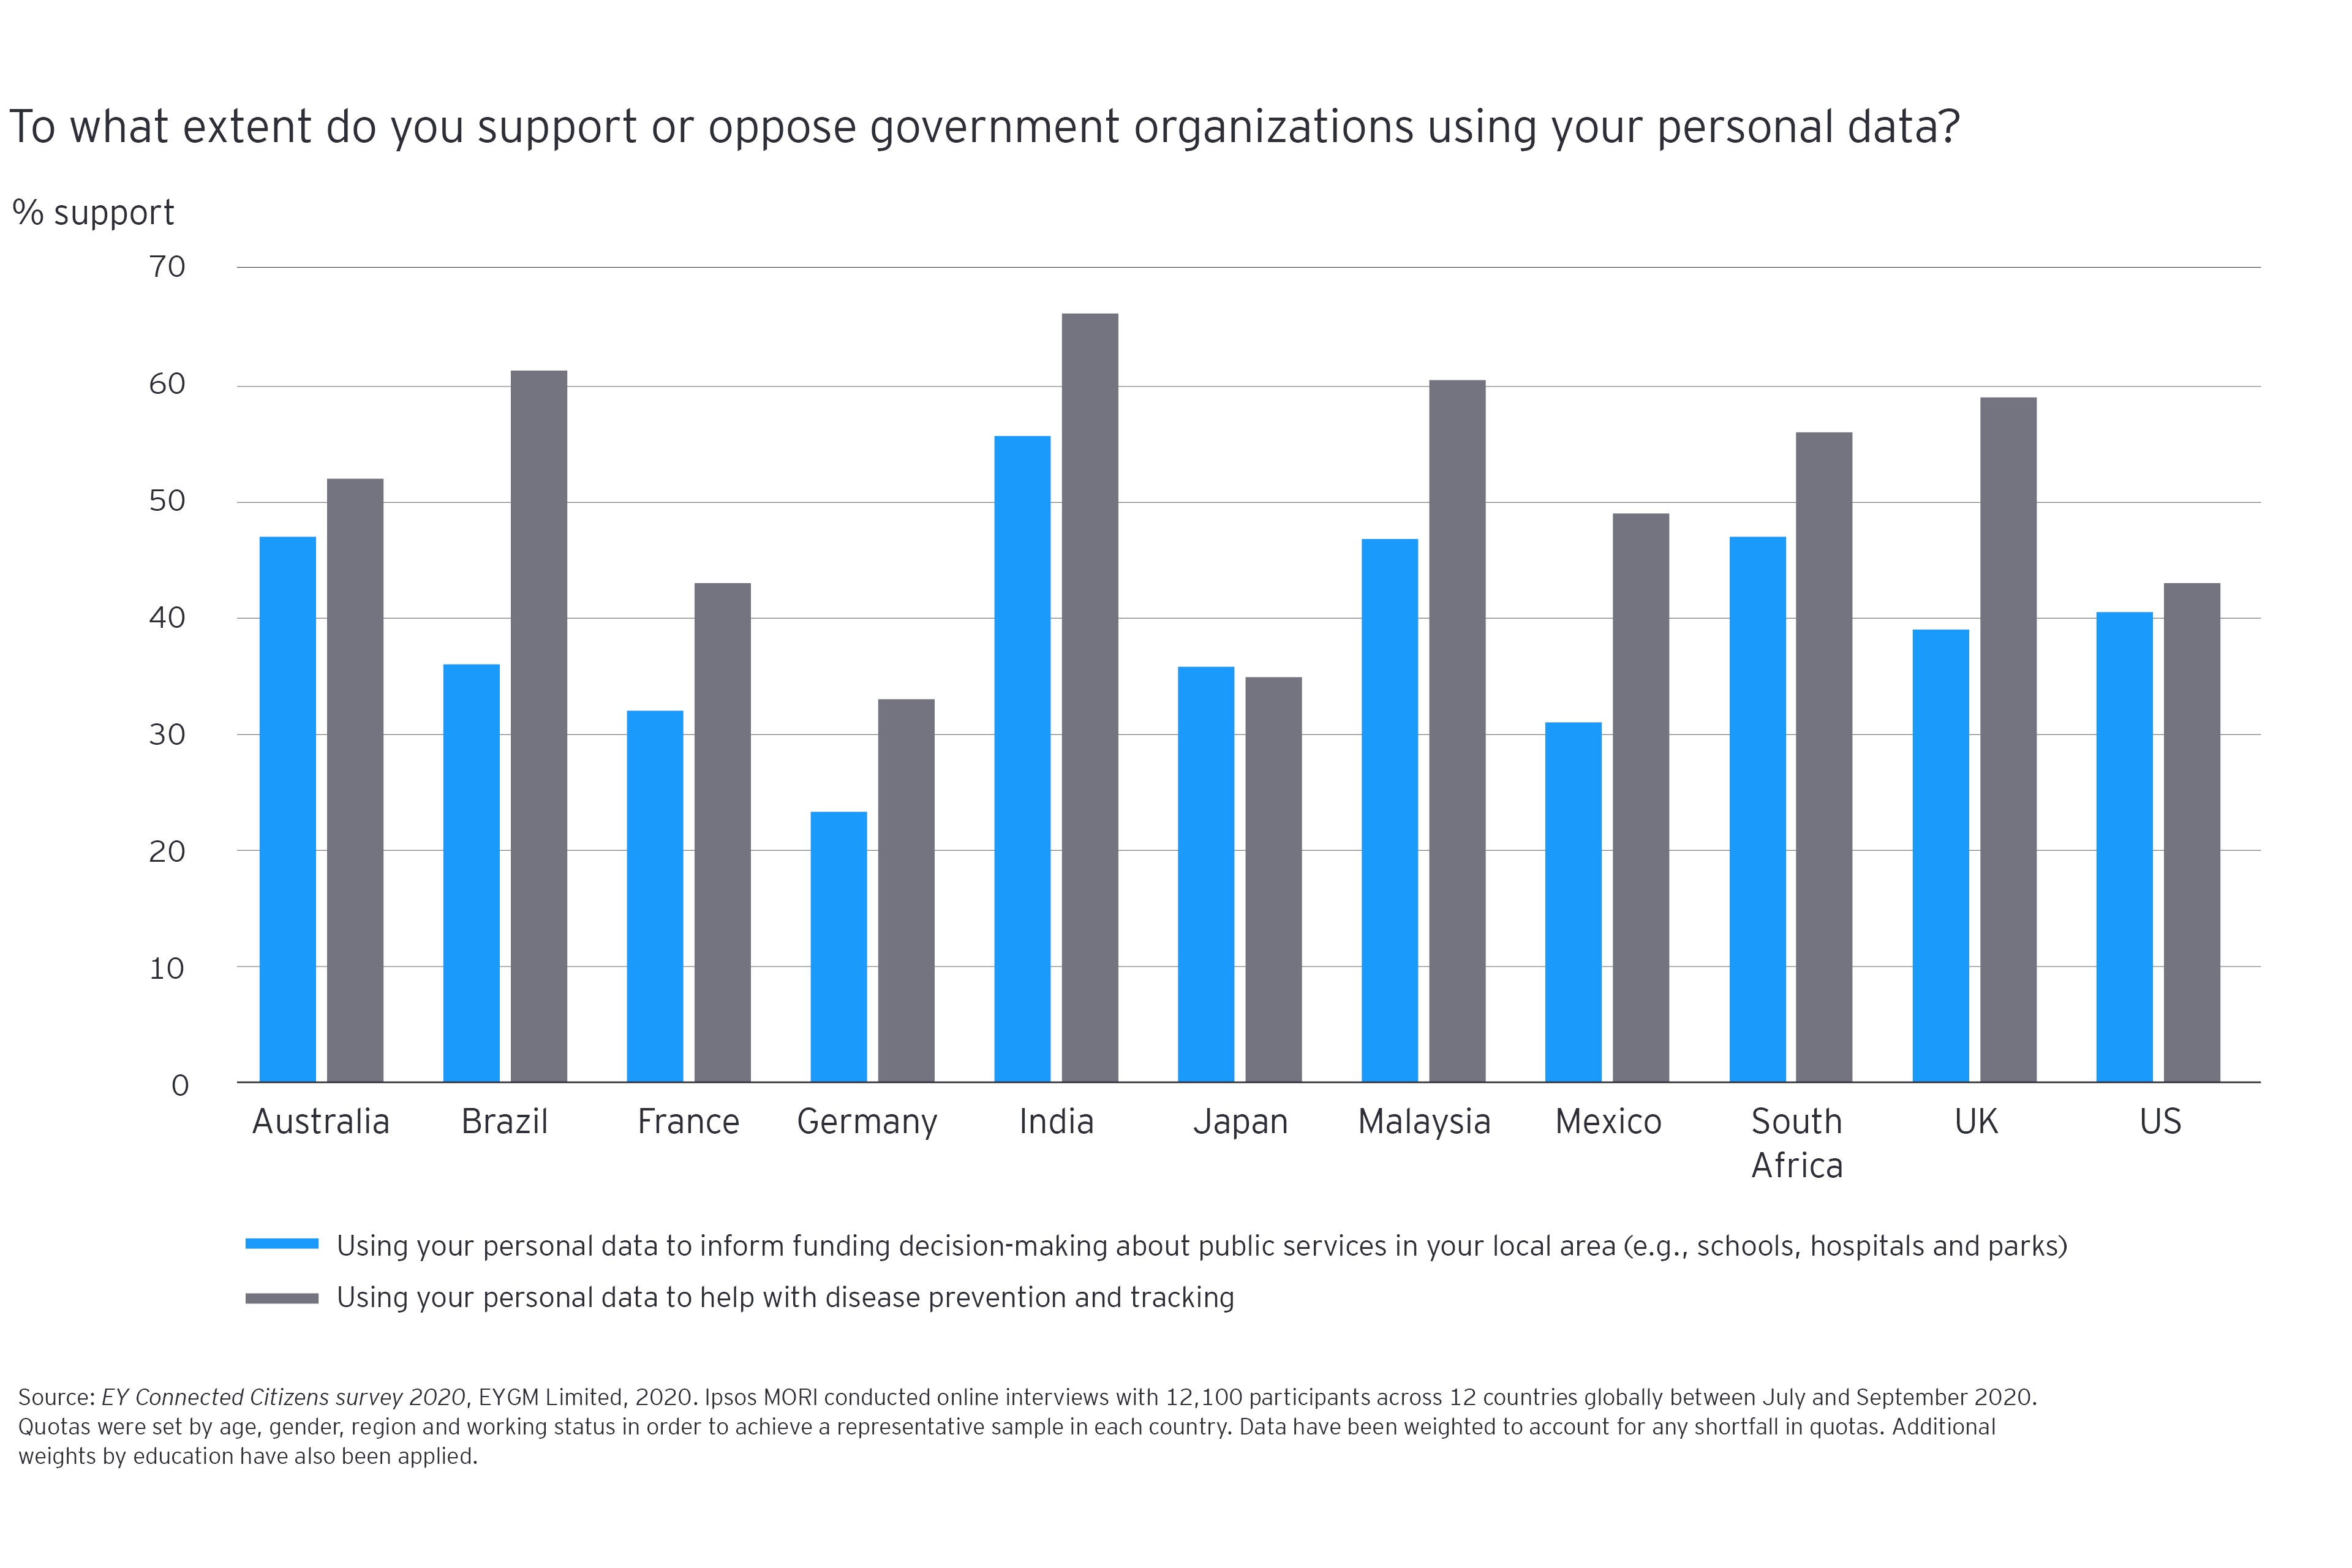 To what extent do you support or oppose government organizations